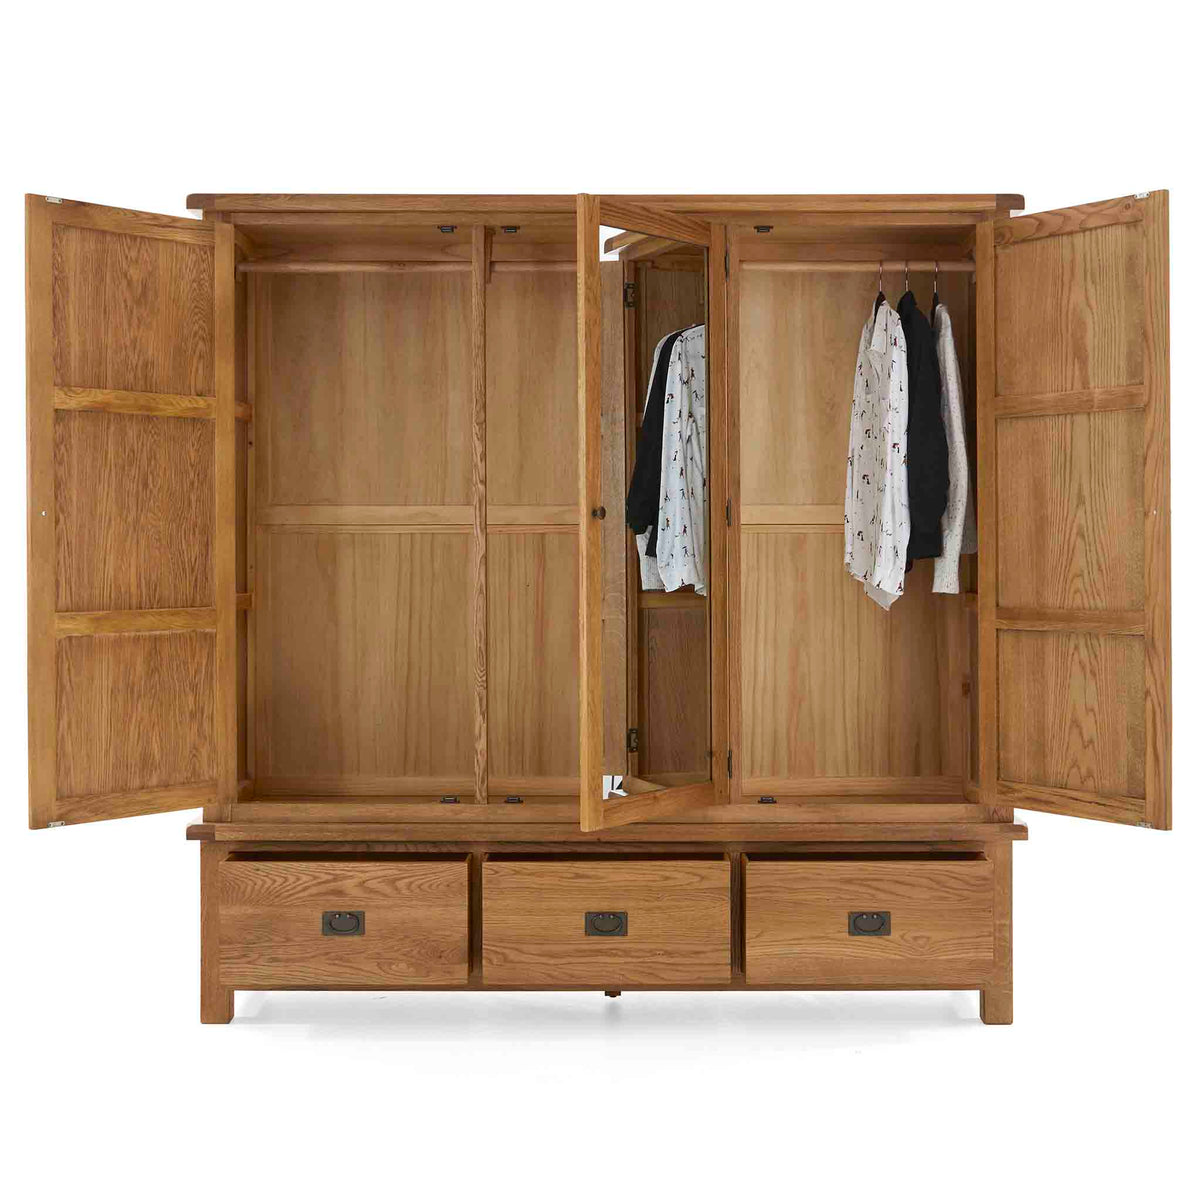 Zelah Oak Large Triple Wardrobe with Drawers - All wardrobe doors open with shirts hanging